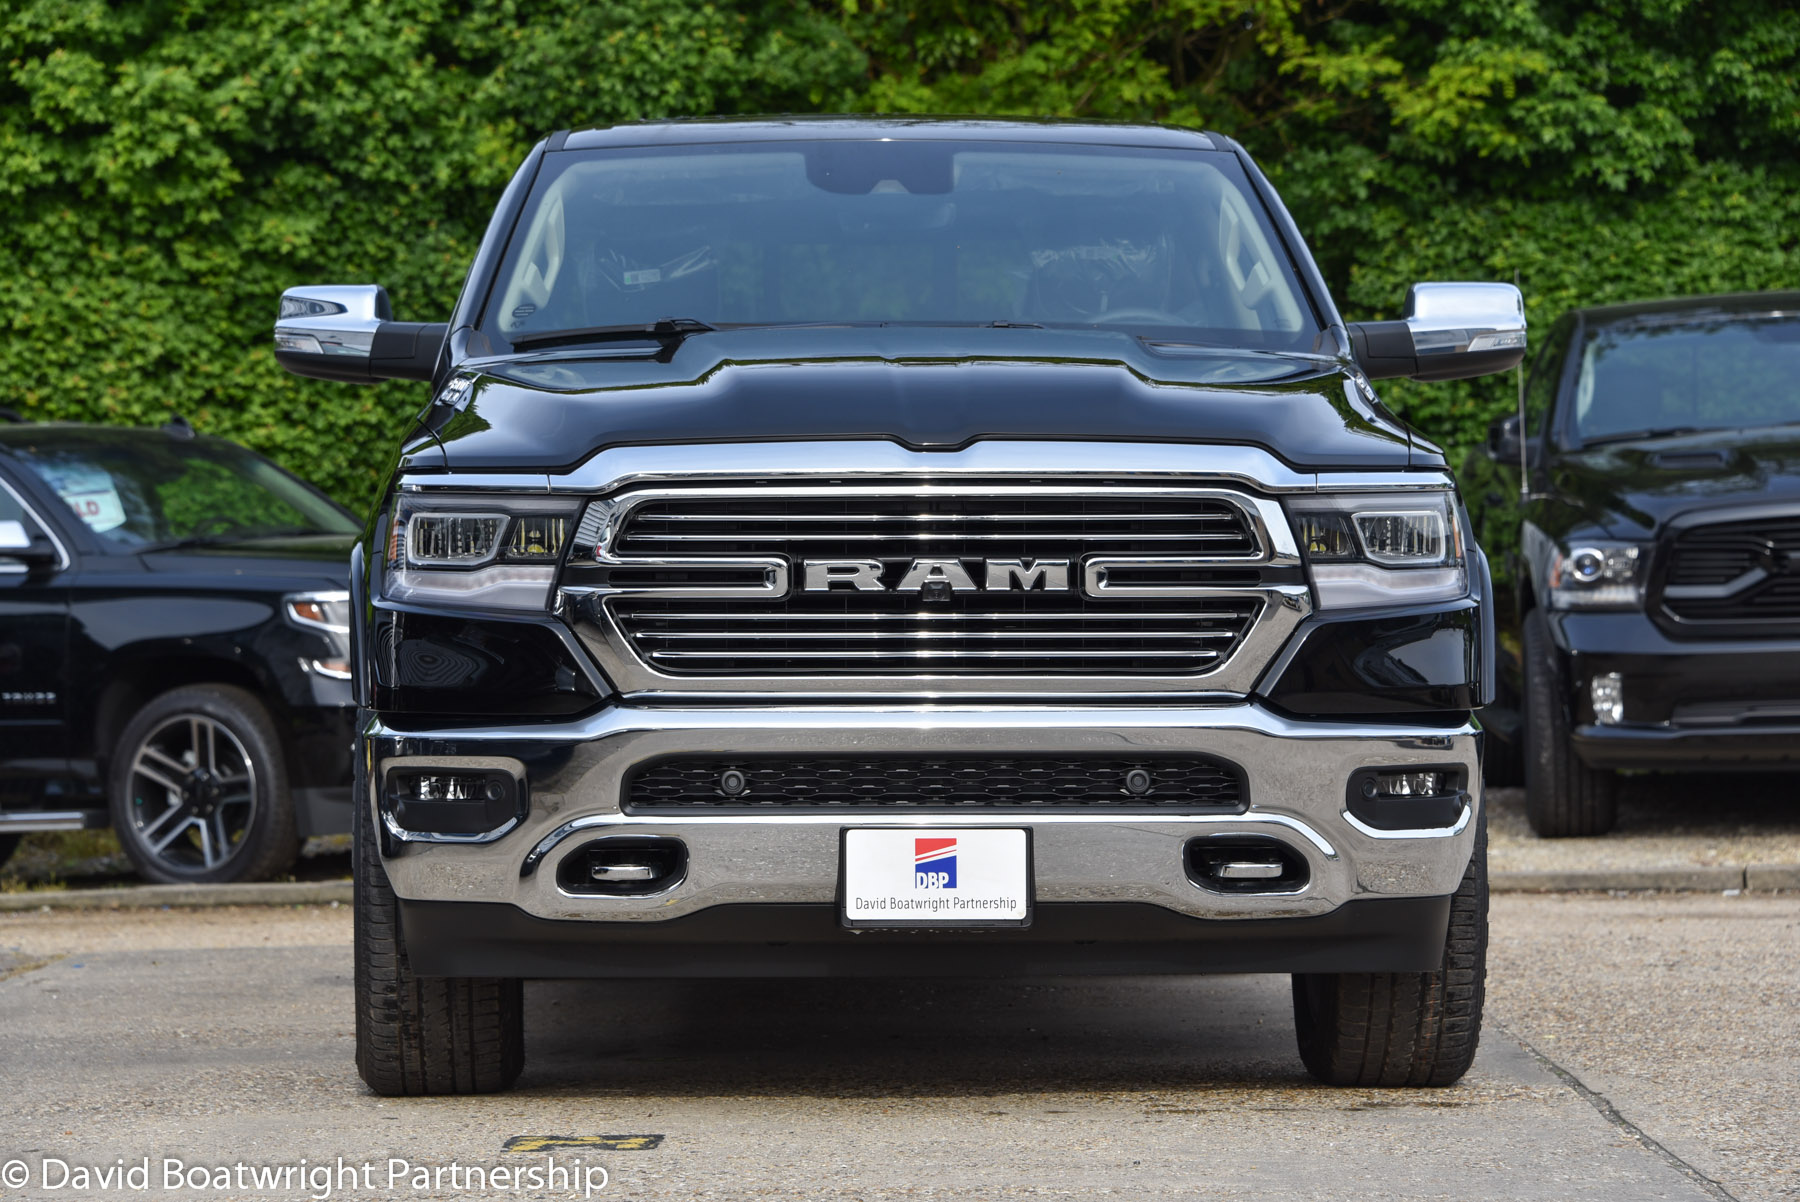 2019 RAM in the UK